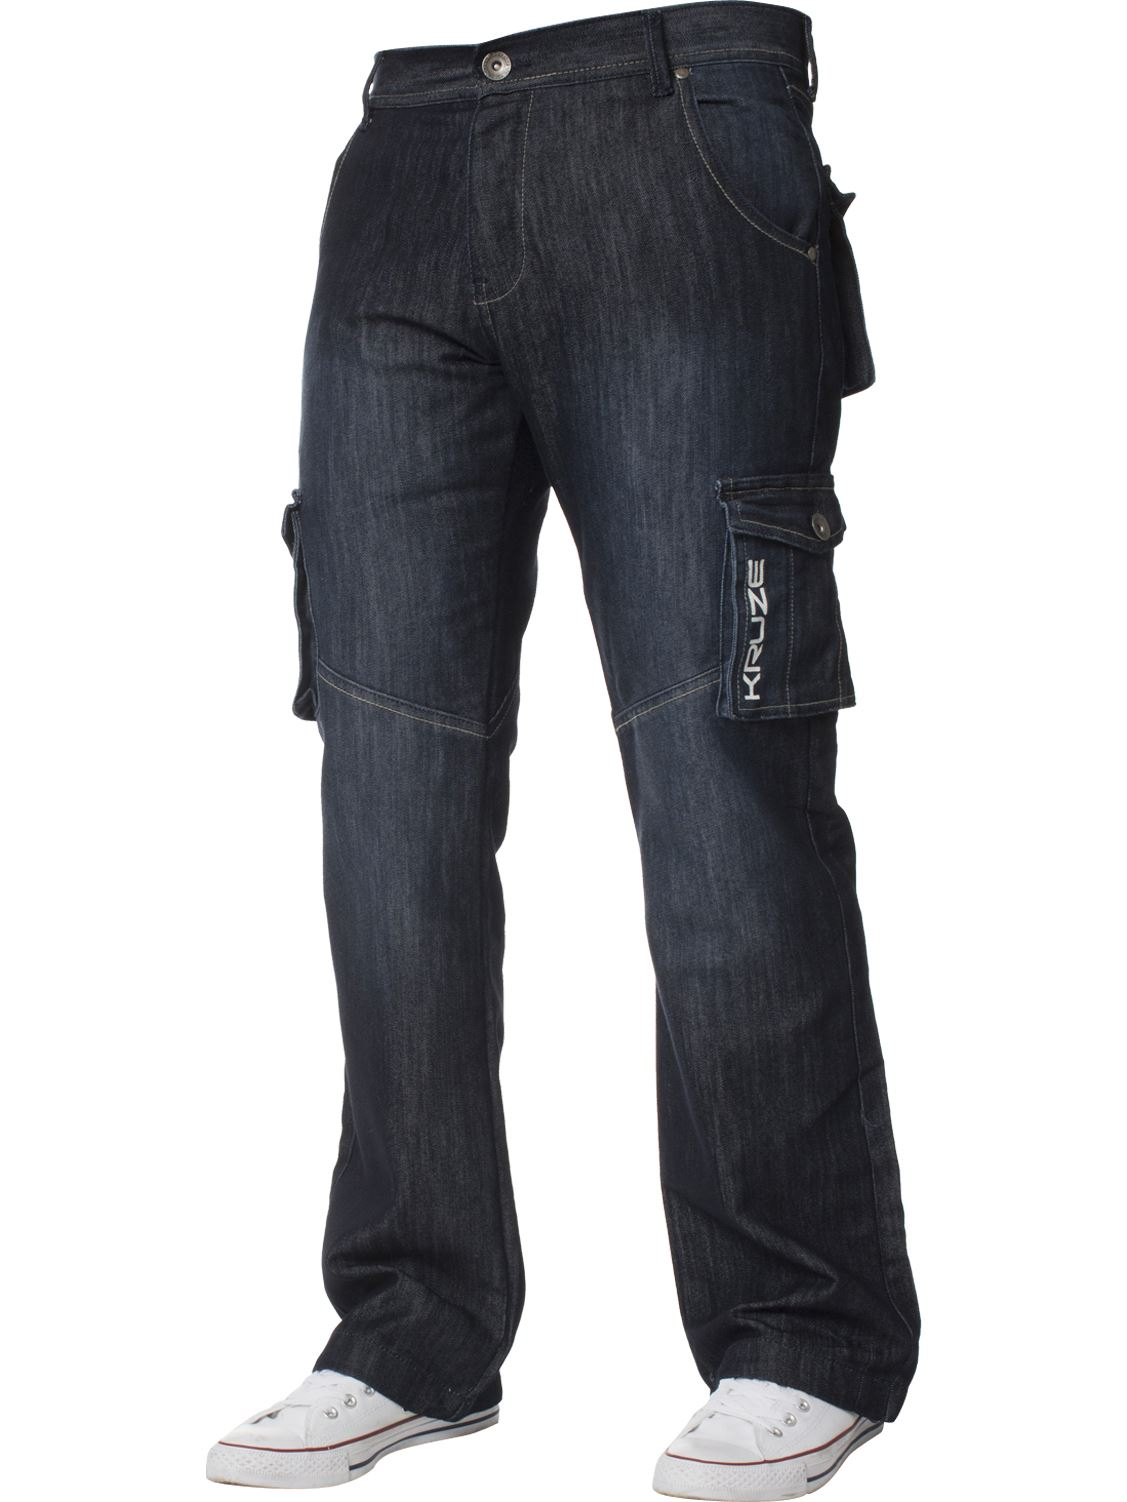 Mens-Cargo-Jeans-Combat-Trousers-Heavy-Duty-Work-Casual-Big-Tall-Denim-Pants thumbnail 63